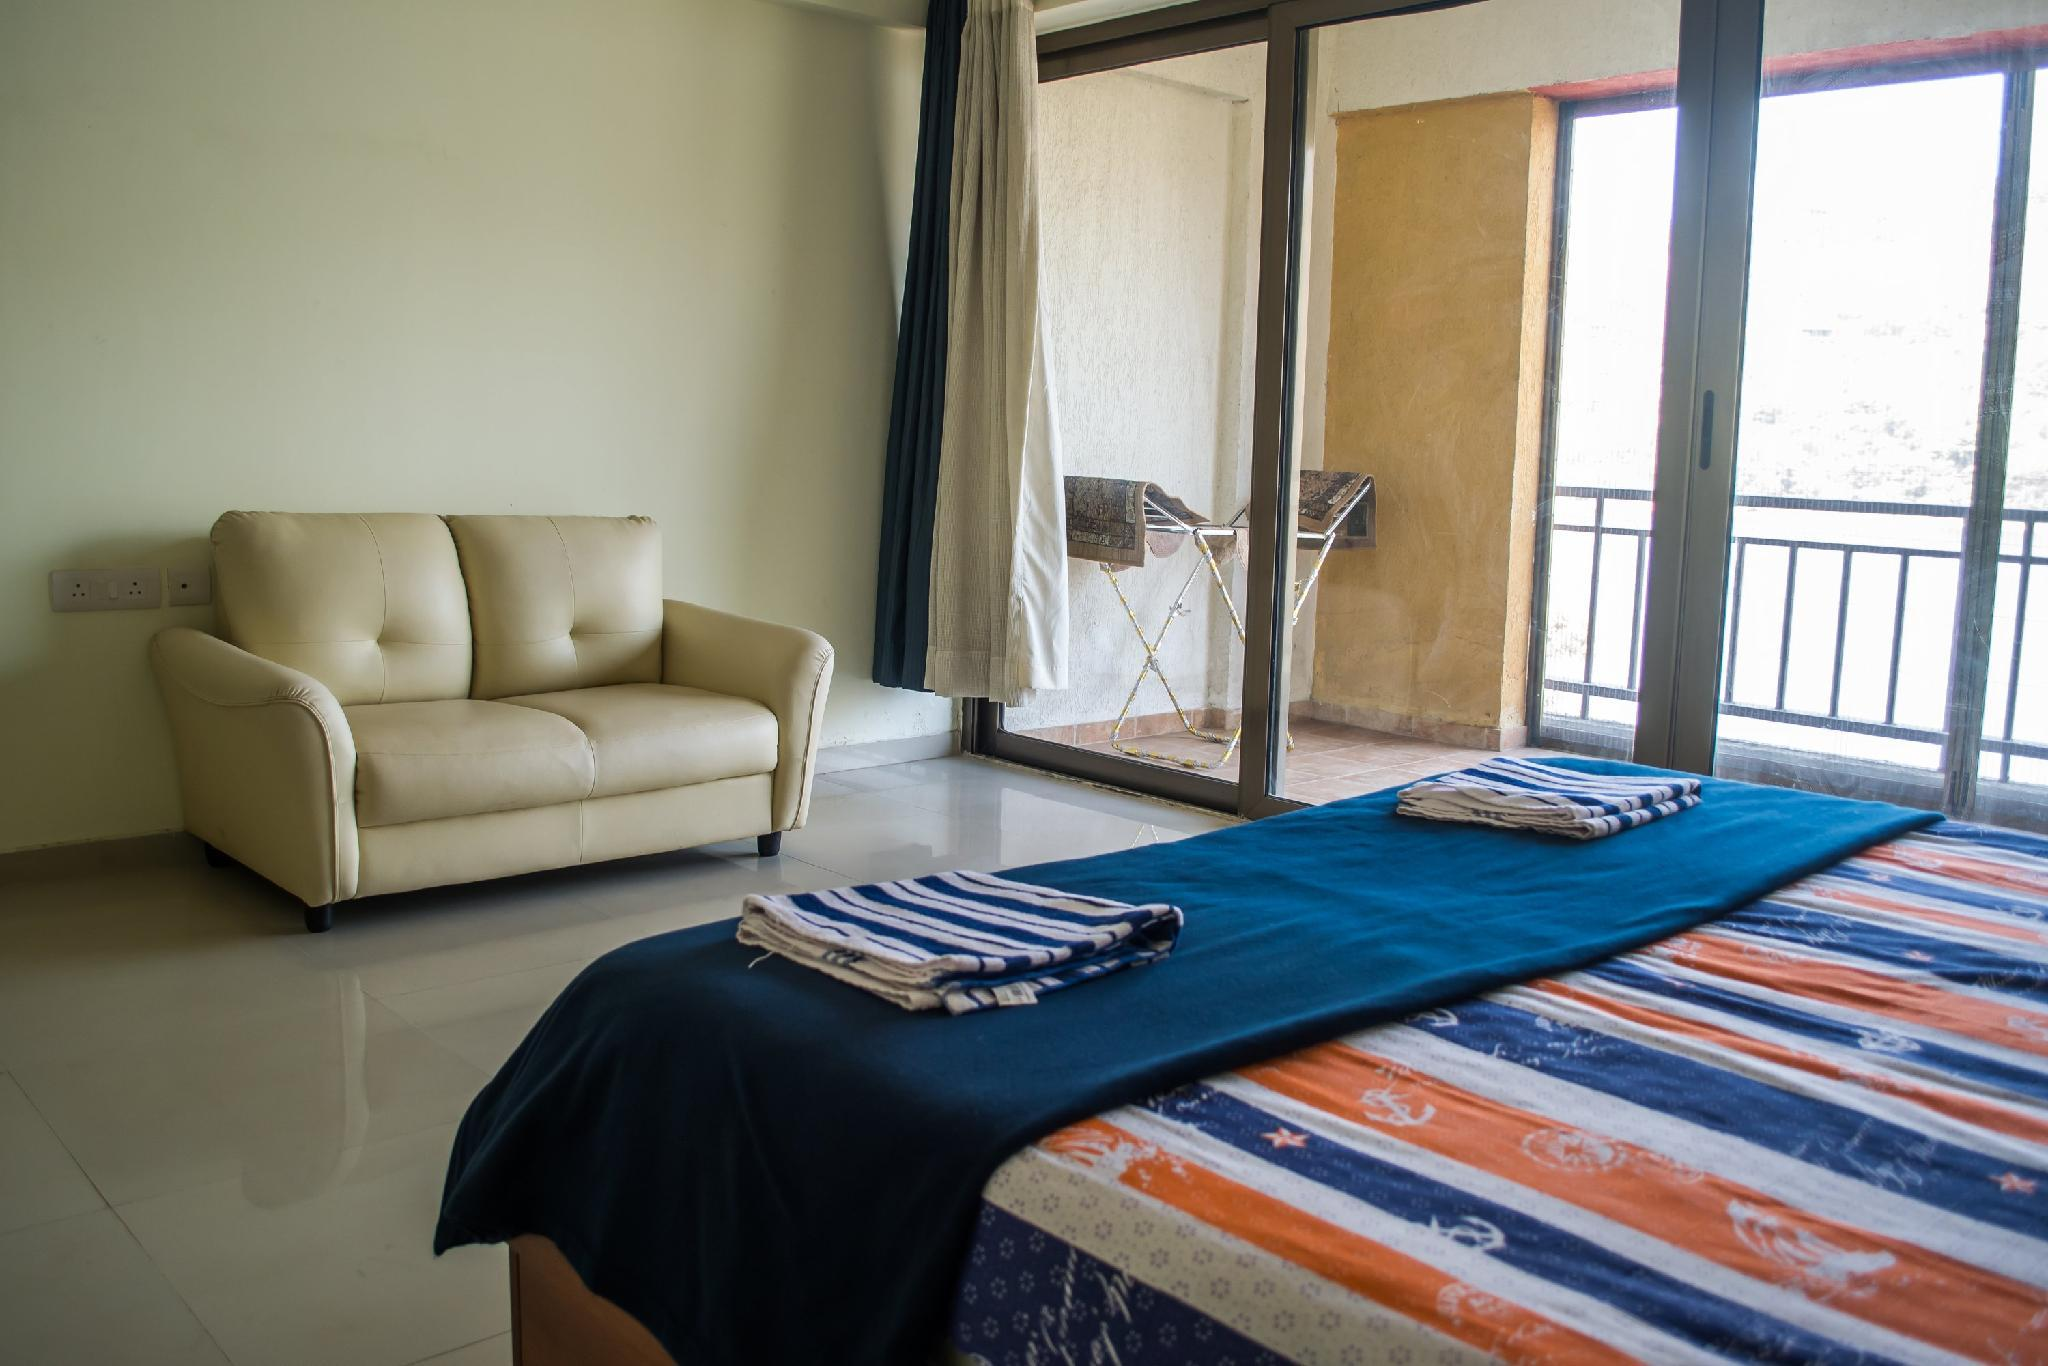 Tripvillas Managed Two Bedroom Apartment, Pune